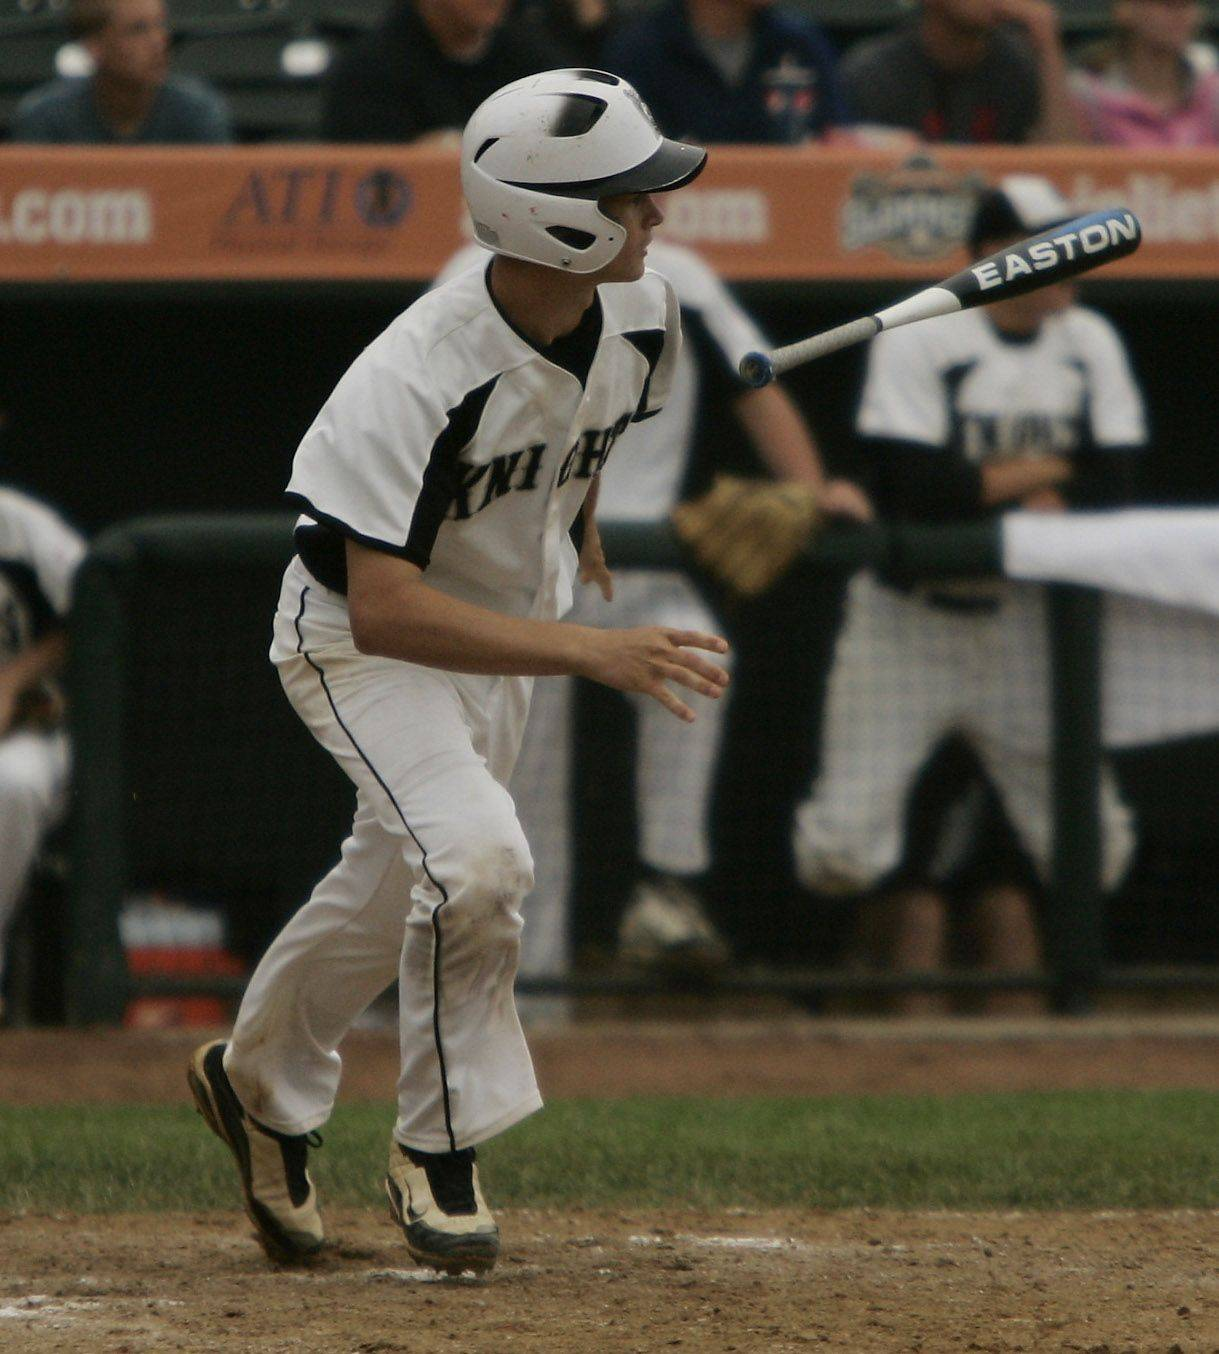 Kaneland batter Brian Dixon gets a hit during the Kaneland vs. Oak Forest boys high school baseball game Saturday in the Class 3A state finals at Silver Cross Field in Joliet. Kaneland defeated Oak Forest 11-3 to win the state championship.